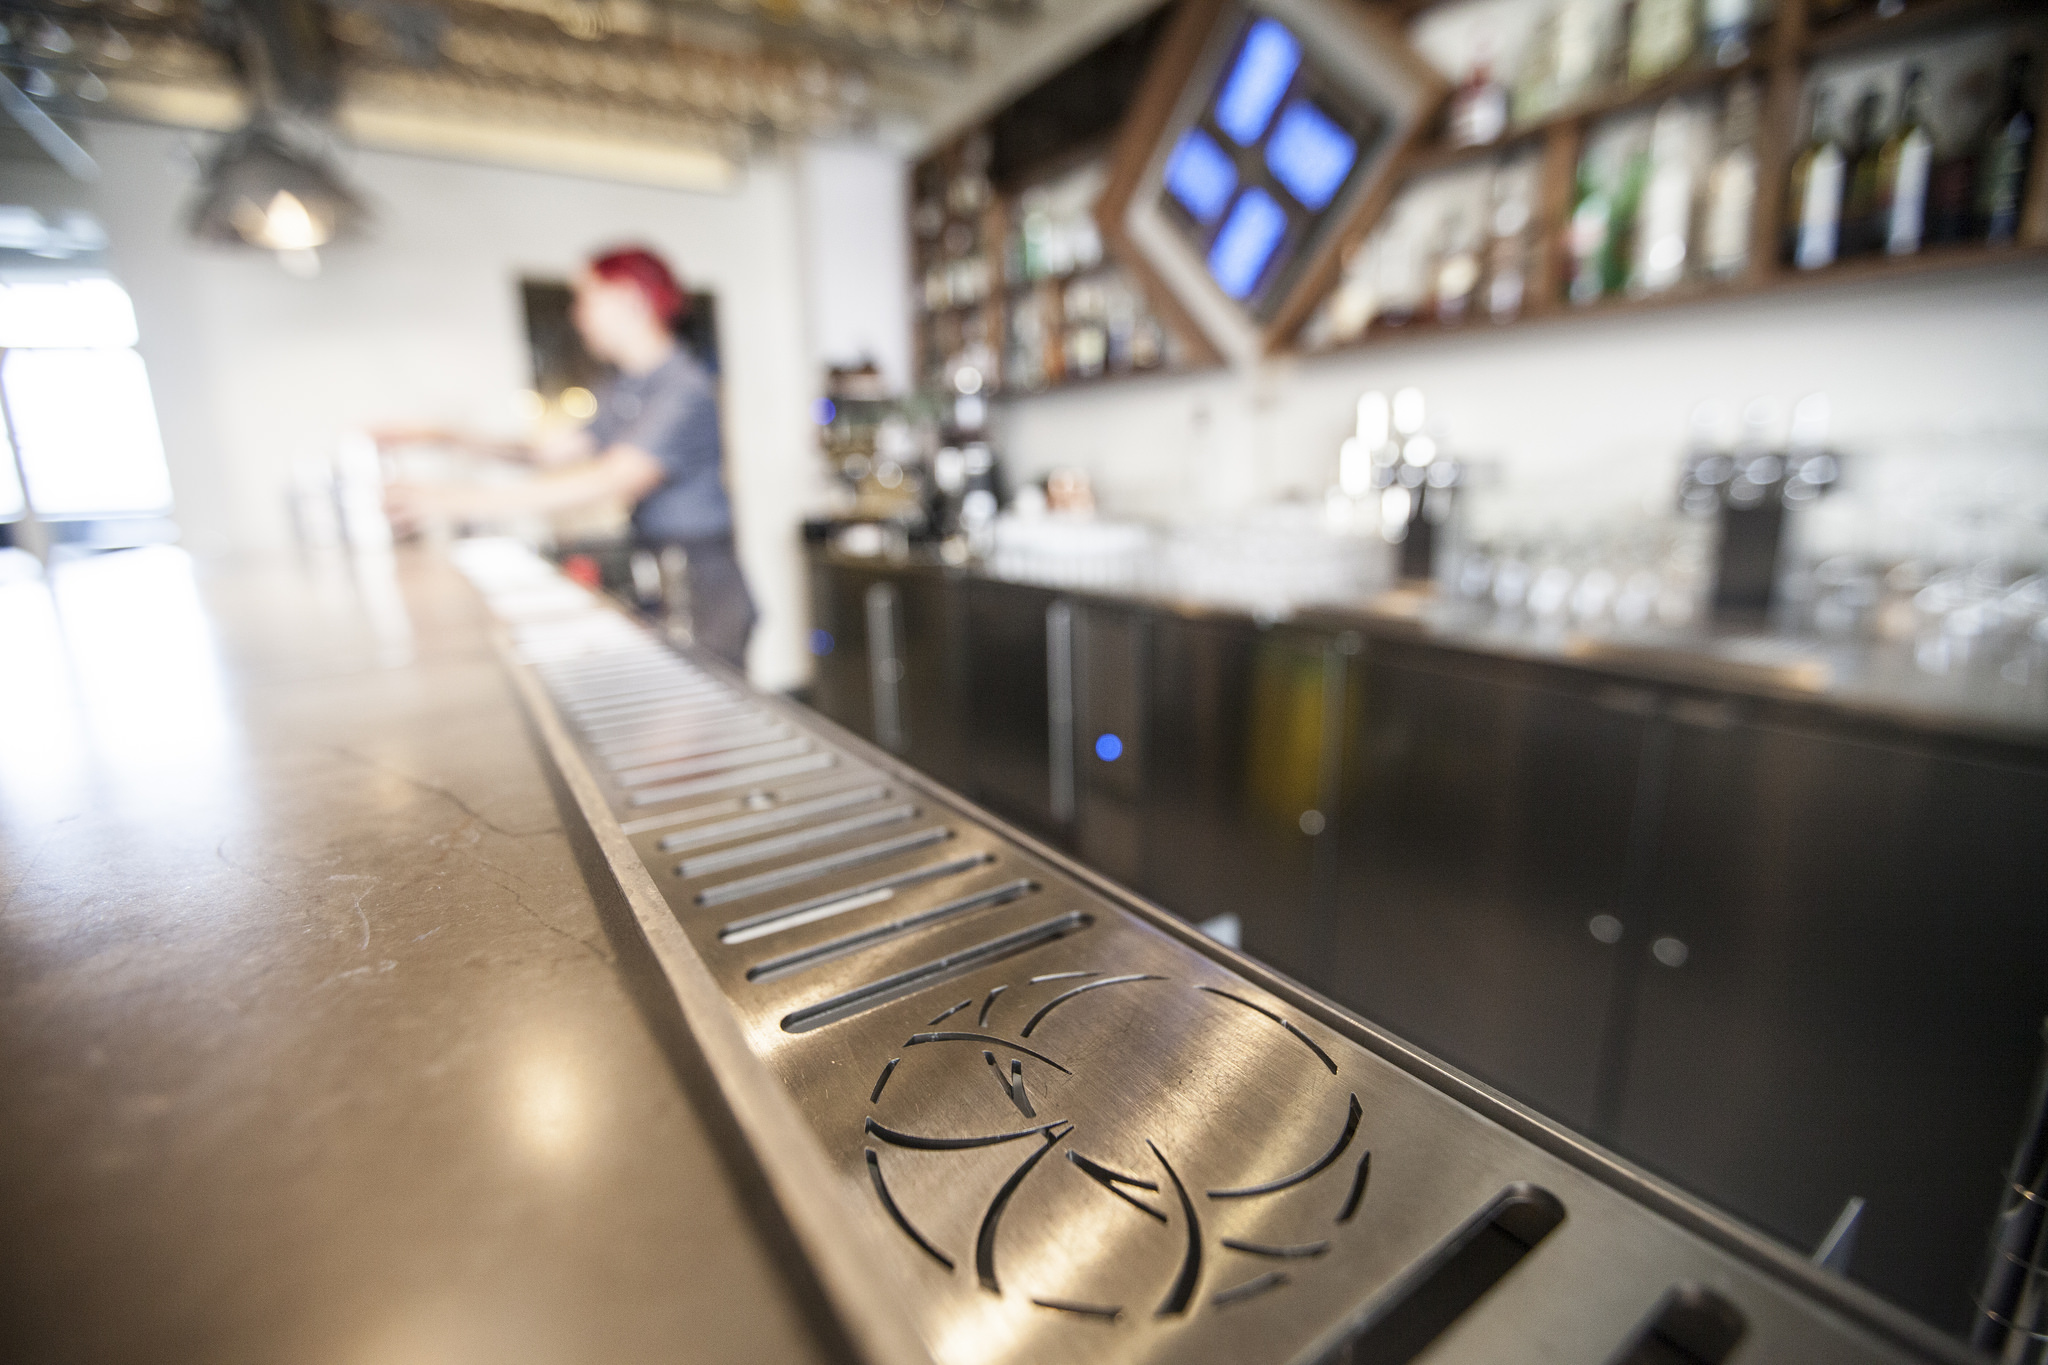 In the bar drip tray, we designed a custom Longnow logo among the drainage.